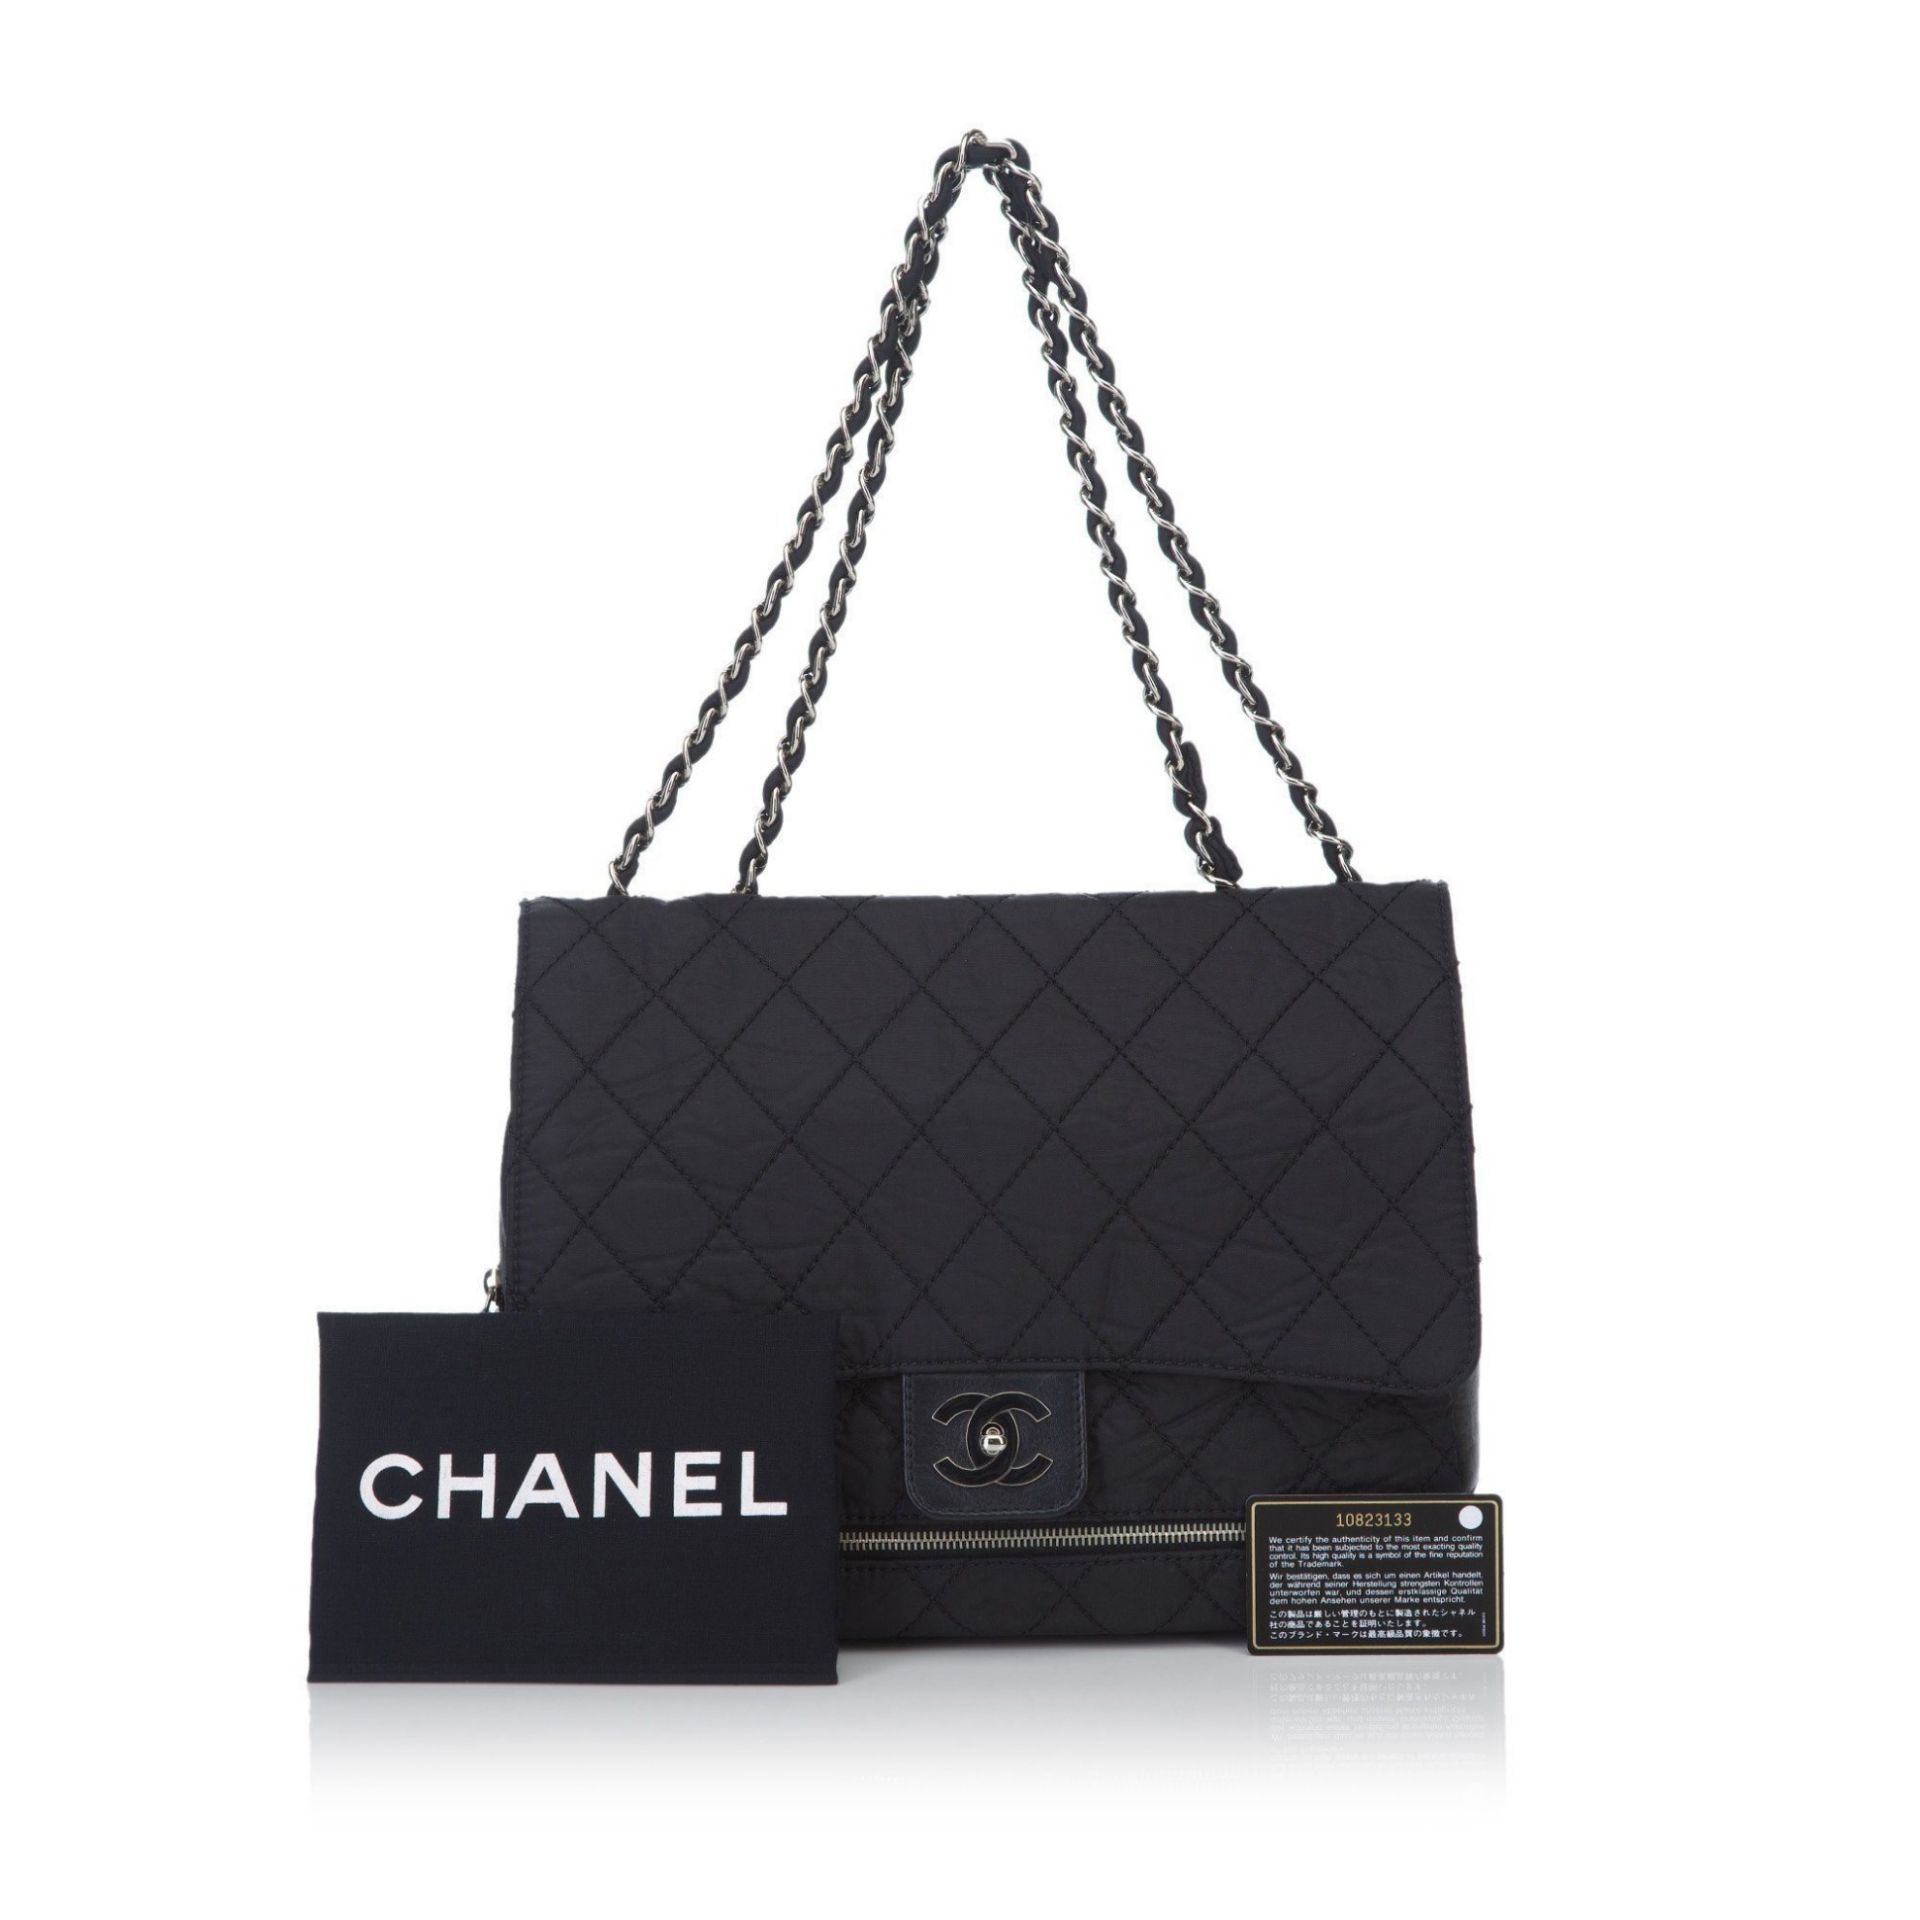 Black Chanel Nylon Matelasse Shoulder Bag